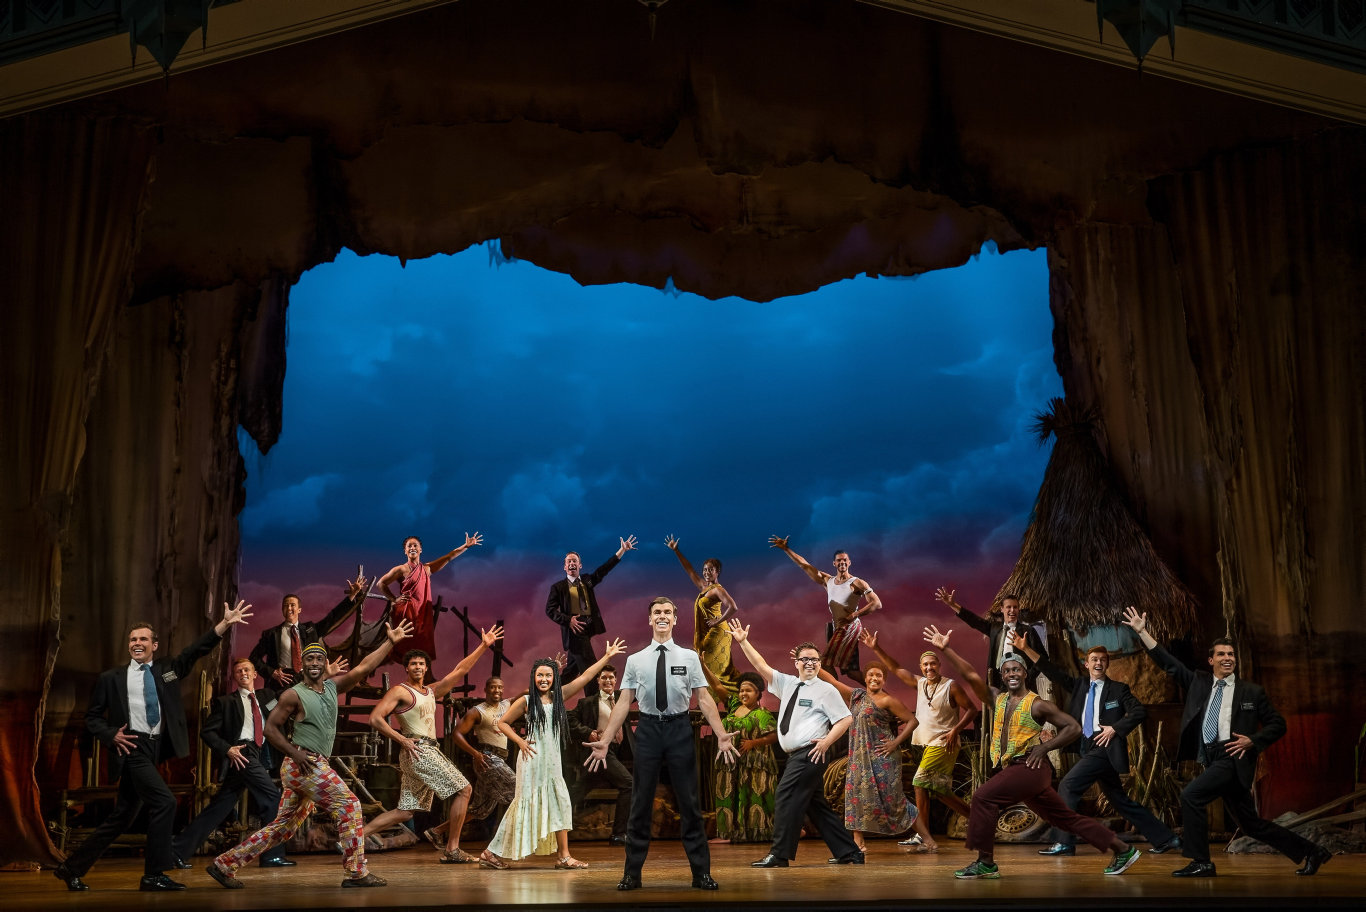 Blake Bowden, Nyk Bielak, Tigist Strode and company of the musical comedy The Book of Mormon.